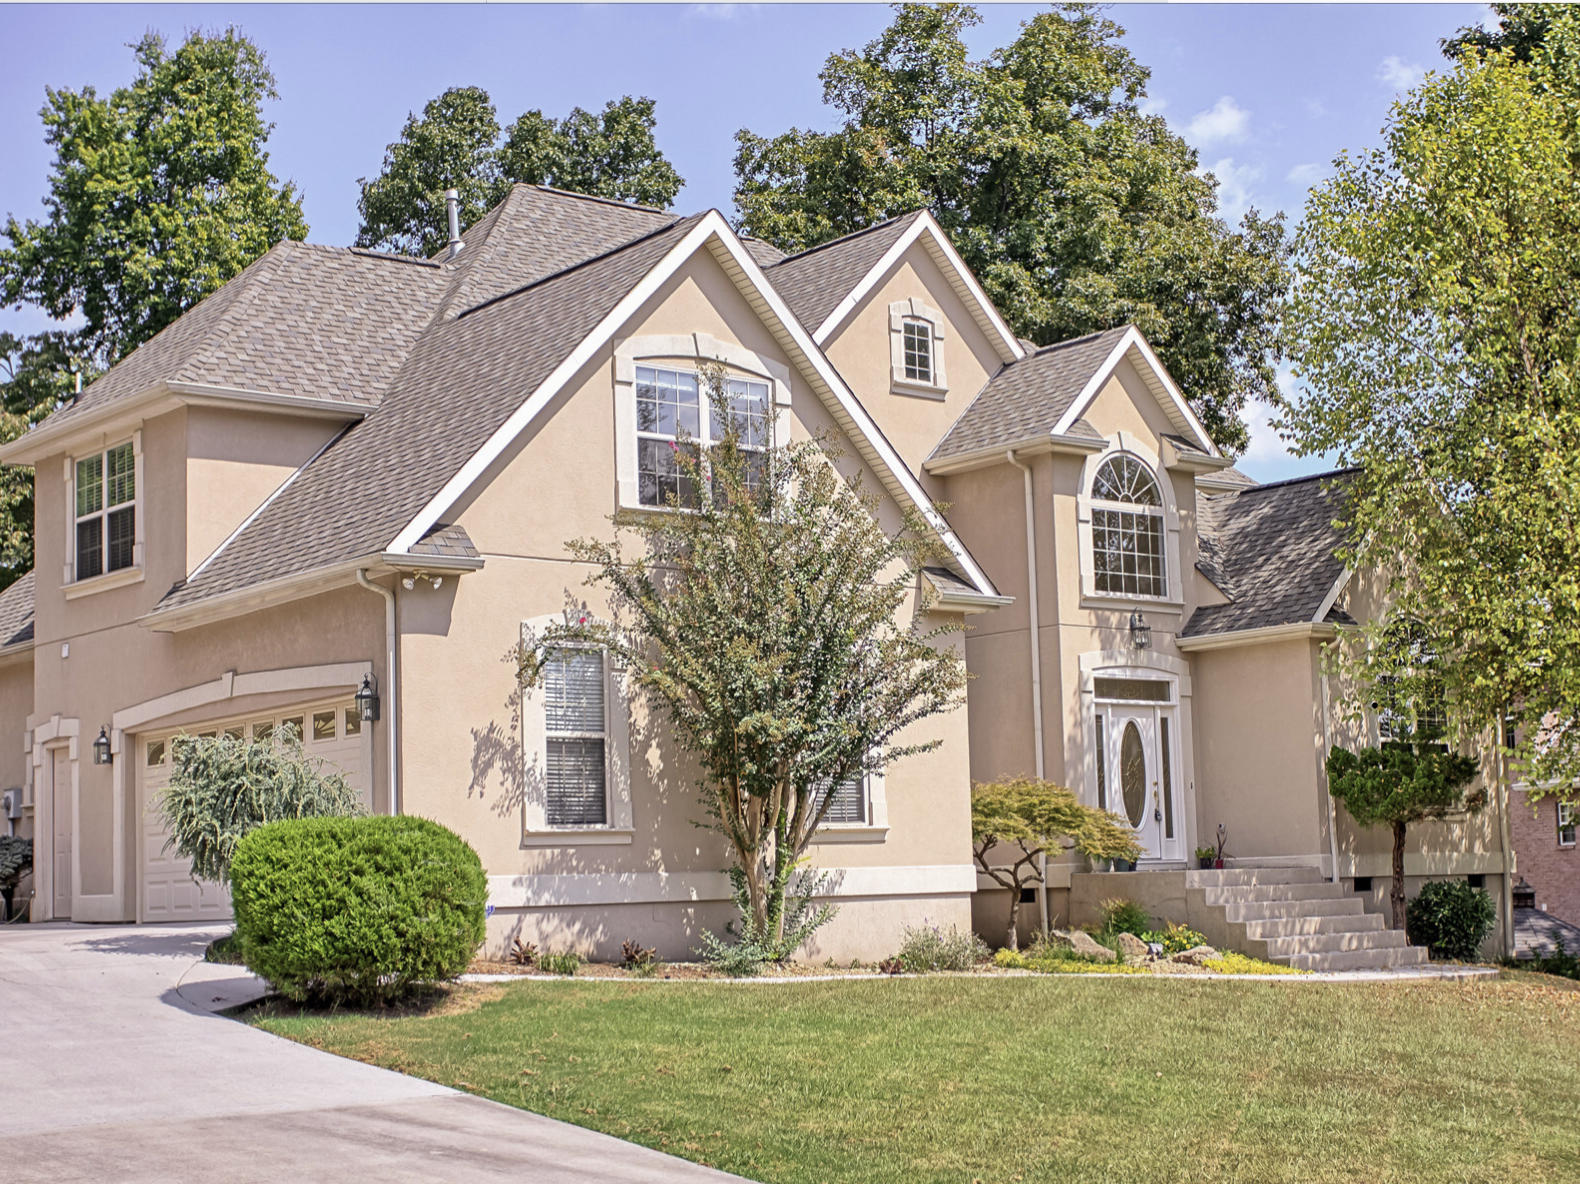 325 Hickory Stone, Powell, Tennessee, United States 37849, 5 Bedrooms Bedrooms, ,2 BathroomsBathrooms,Single Family,For Sale,Hickory Stone,1094903